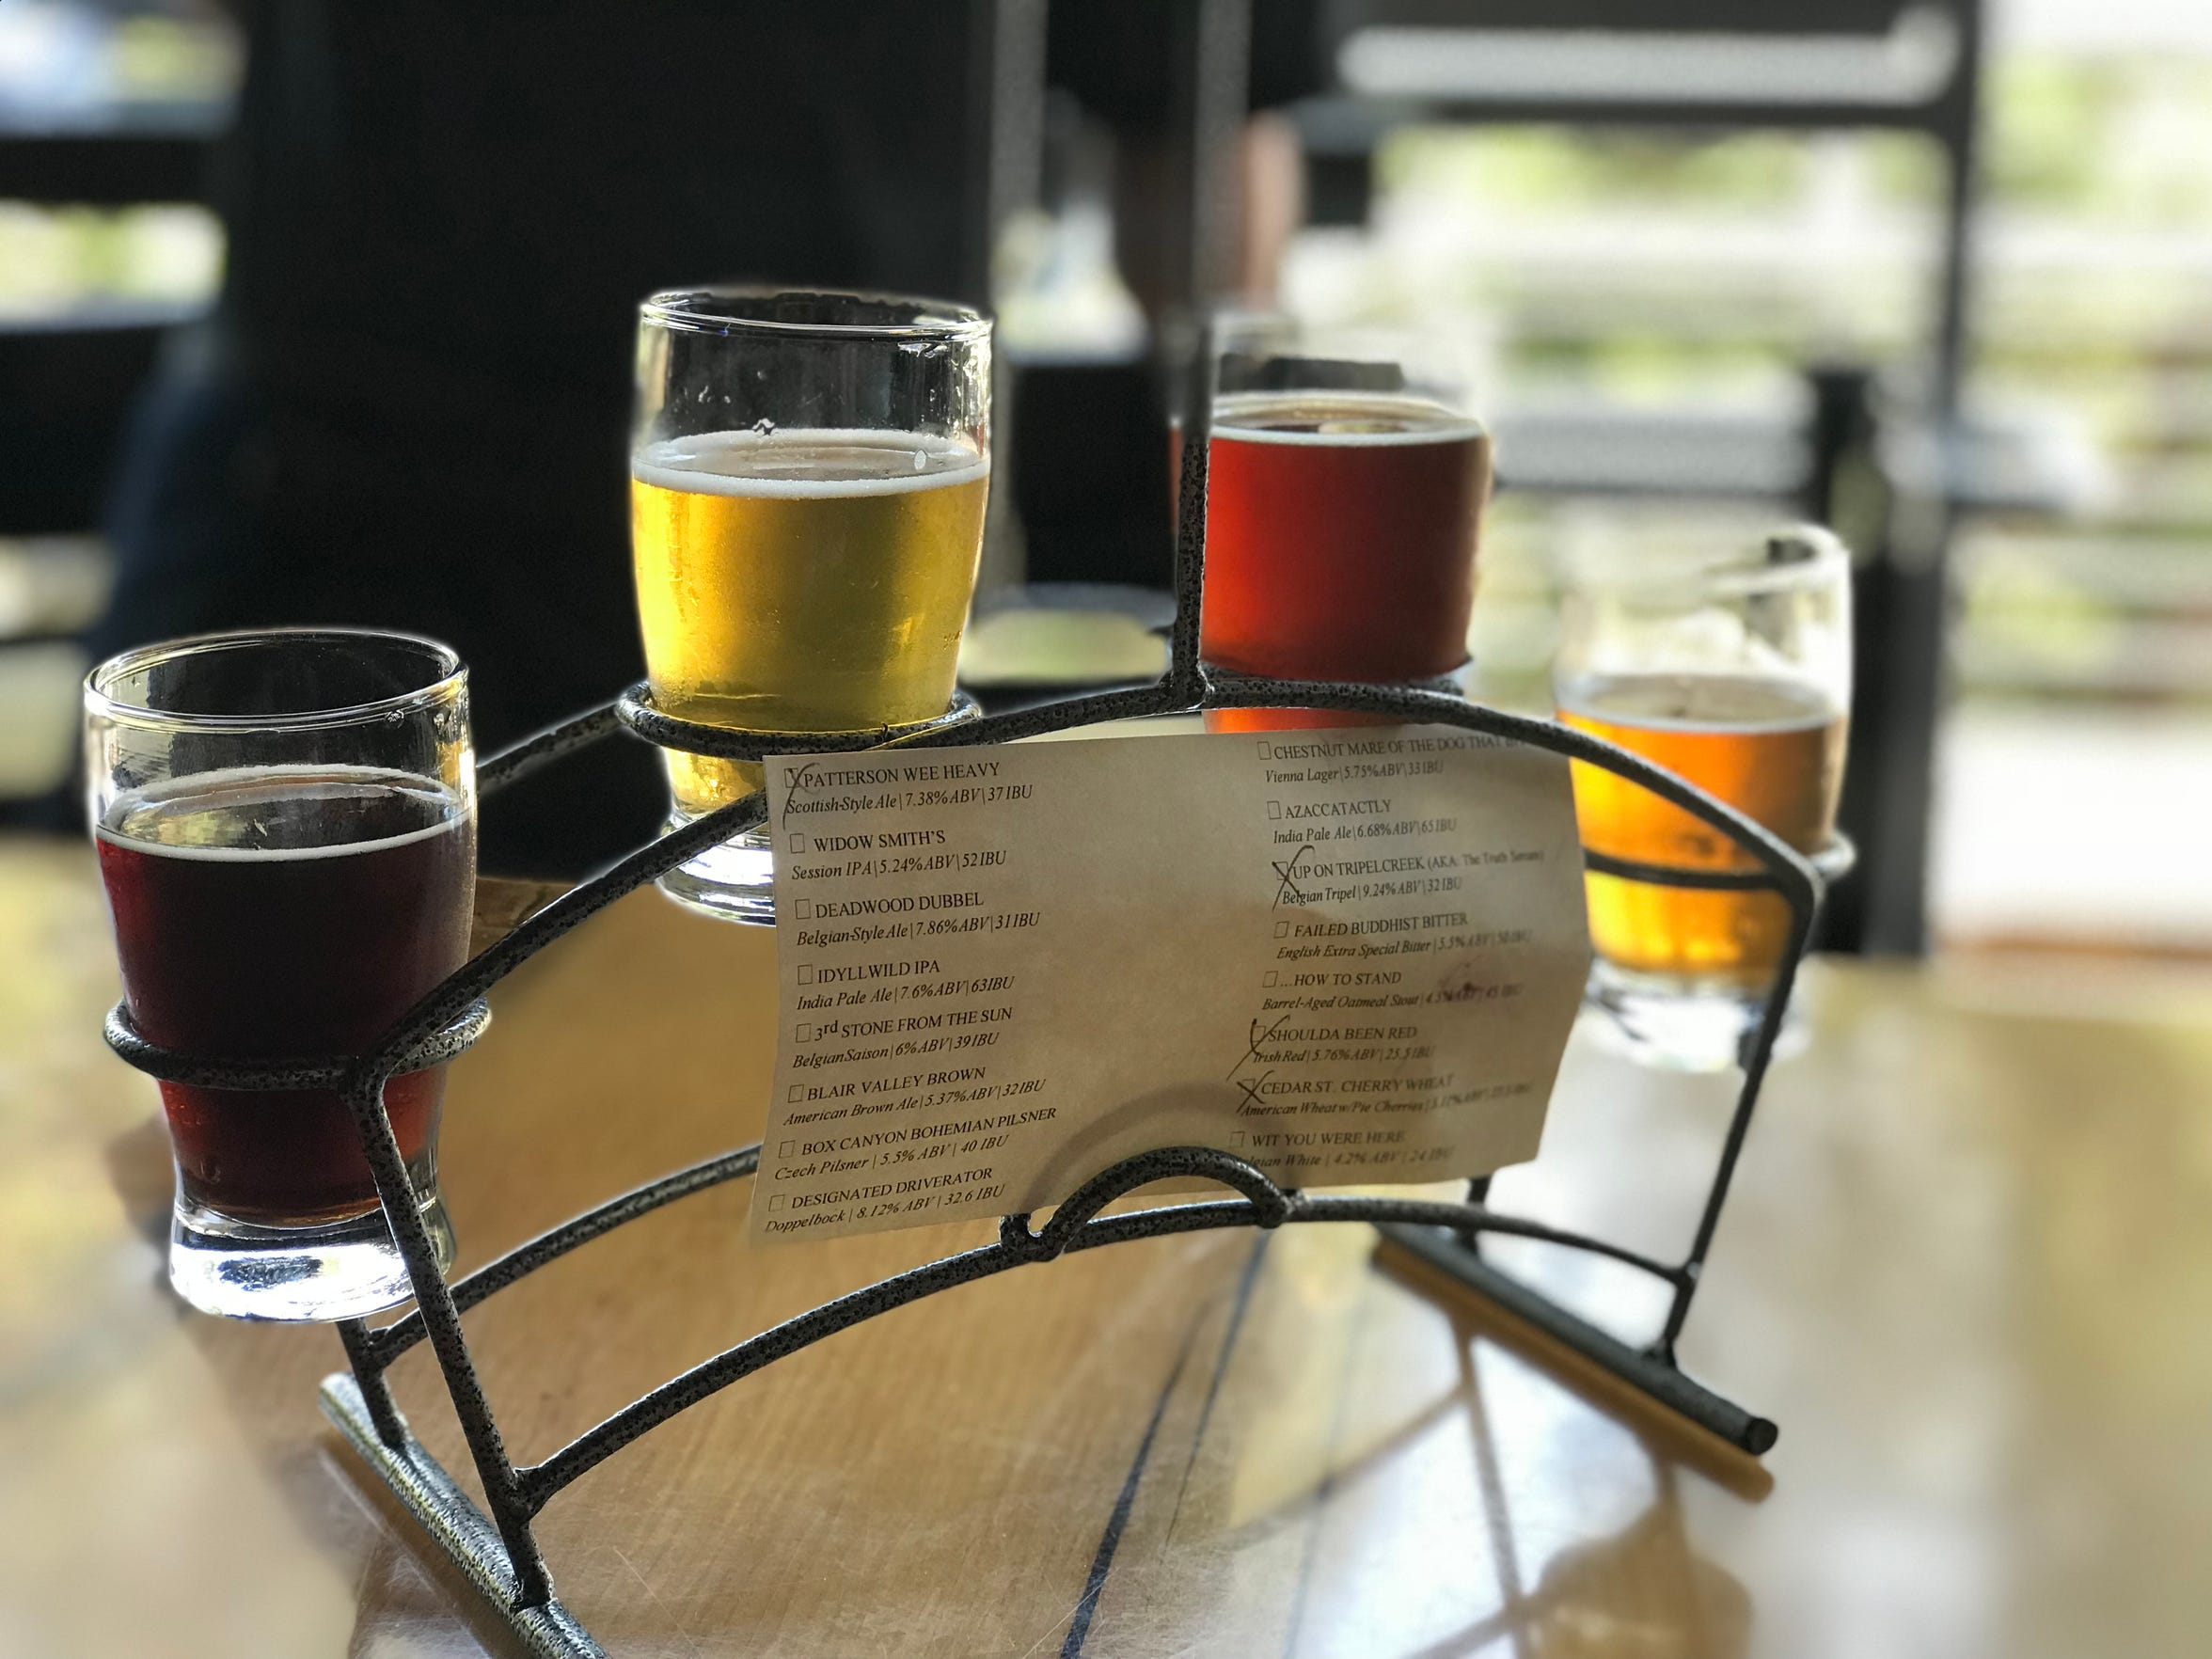 Idyllwild BrewPub boasts house brews that change daily.